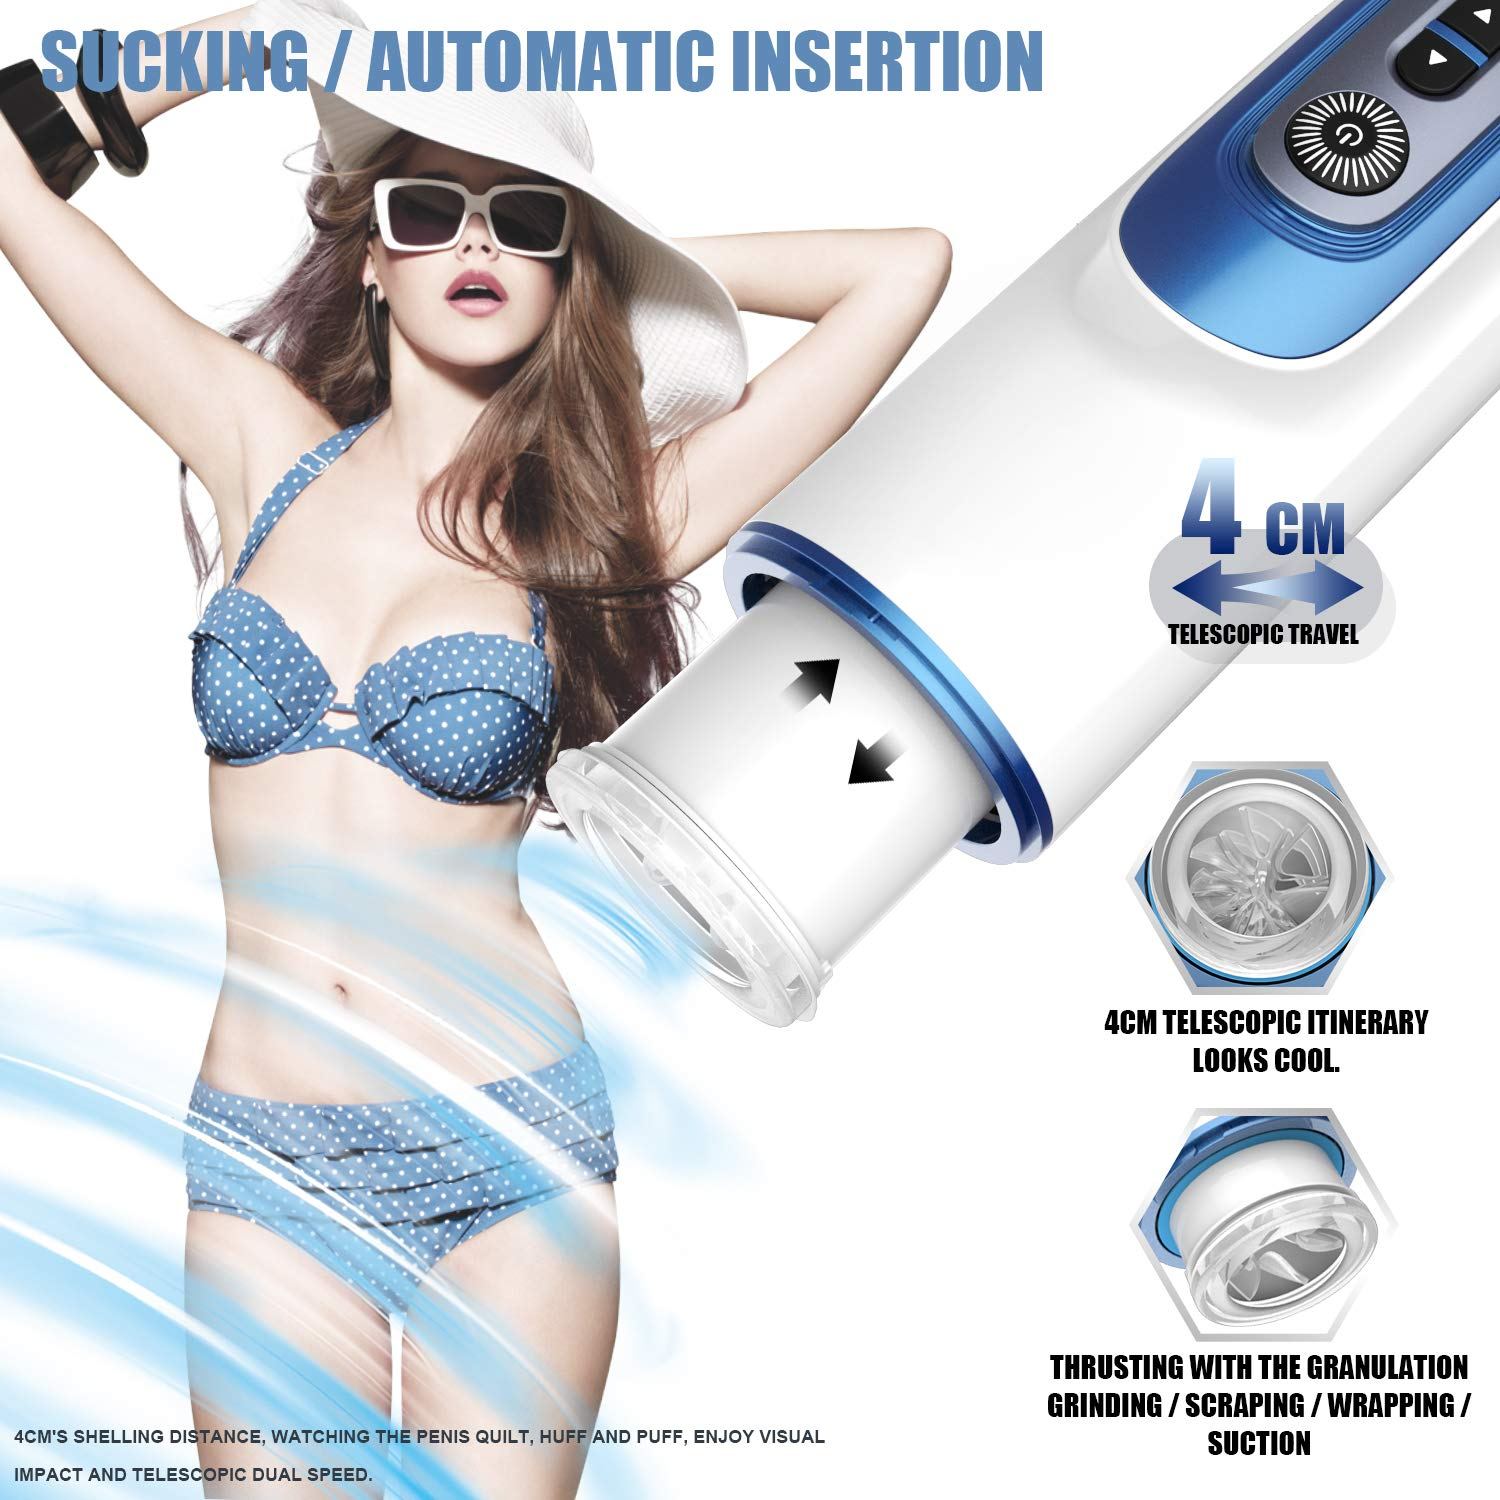 Sili Heat Male Sucker Or*al Ton*GUE Deep Throat Lip Sucking Toy Safe Silicon Trainer Artificial Vigina Real Pussy Male Man Sexy Underwear for Men,Best Rated for Travel Gift -Party Gift-T-Shirt by RXDong